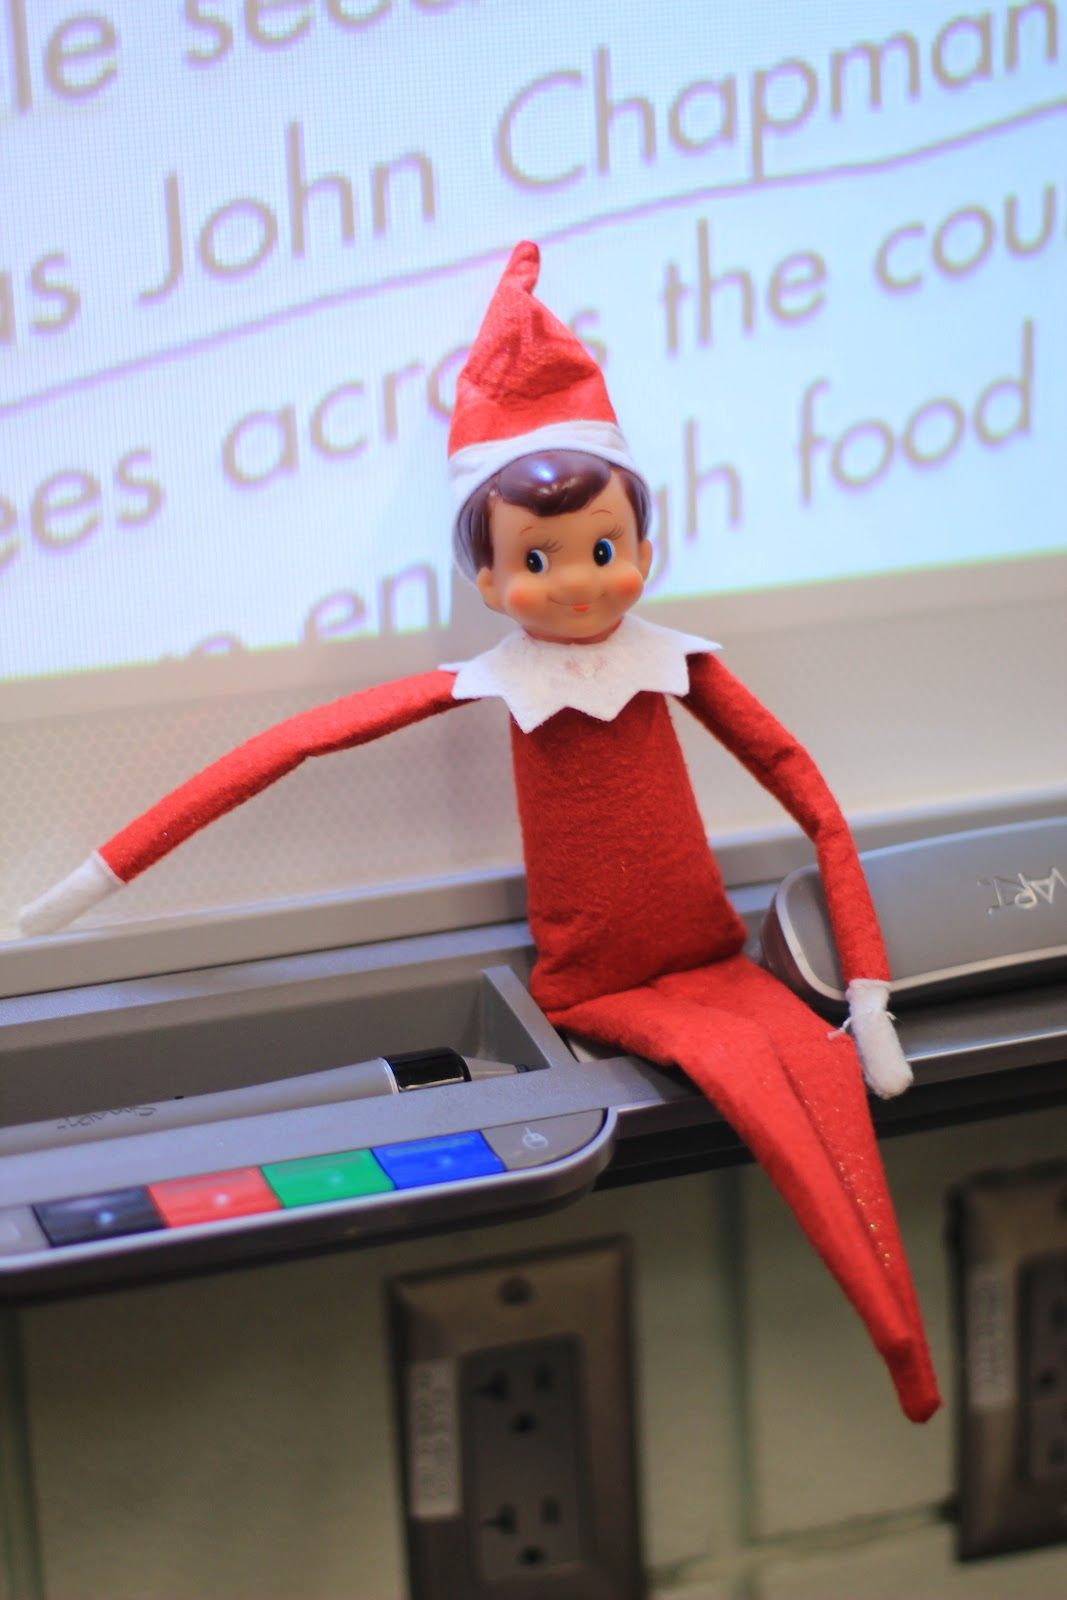 Classroom elf on the shelf ideas | Elf, Elf on the shelf ...